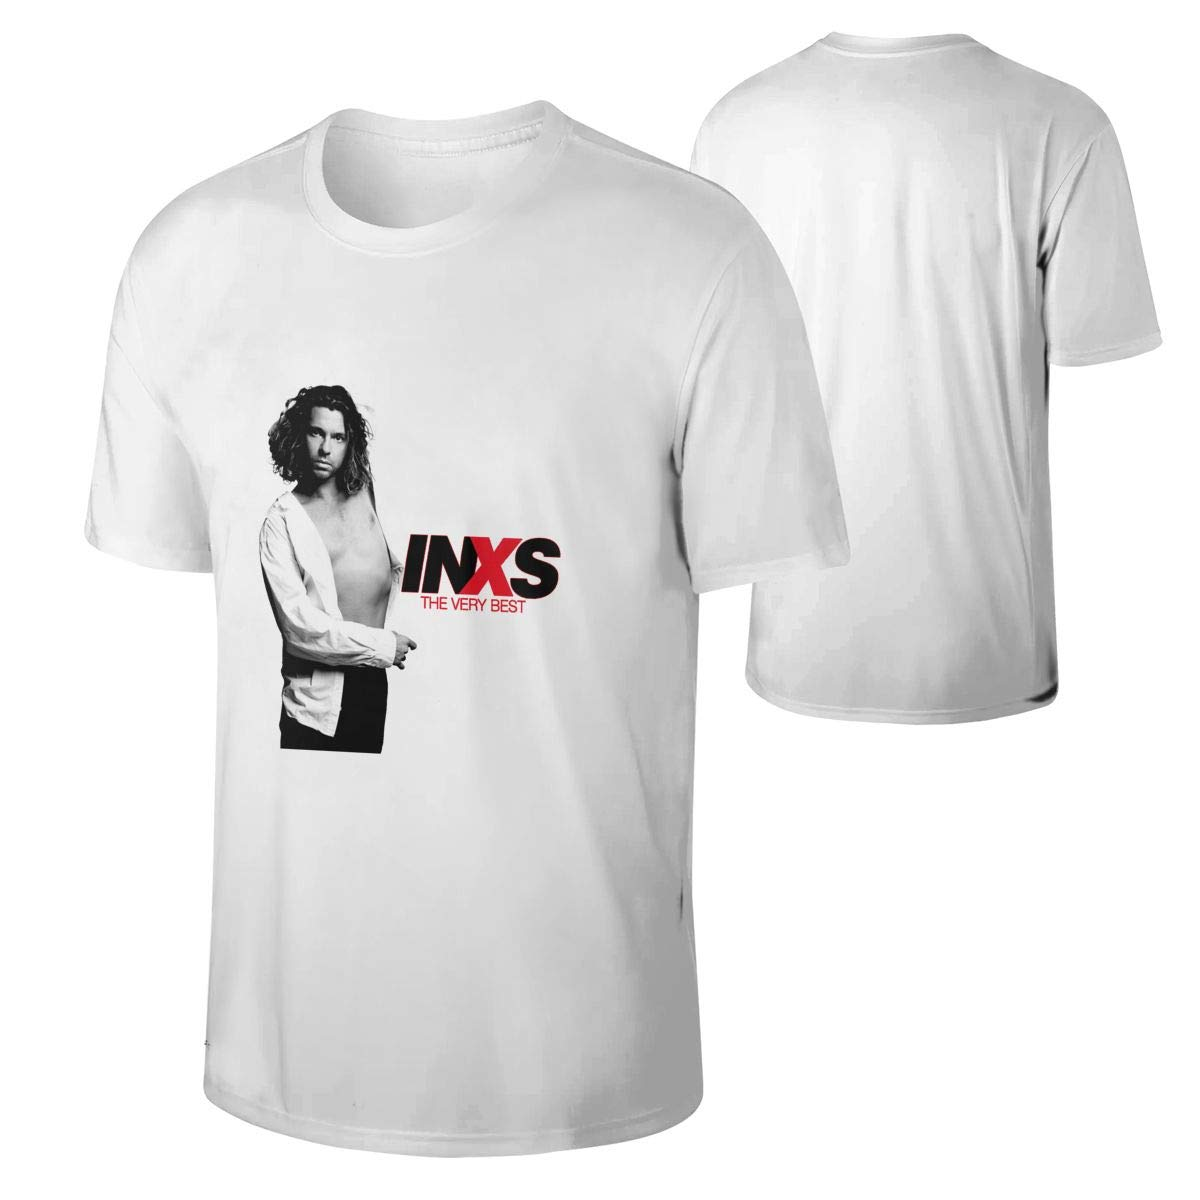 S The Best Of Inxs Soft Teens Driving Tshirts Gift